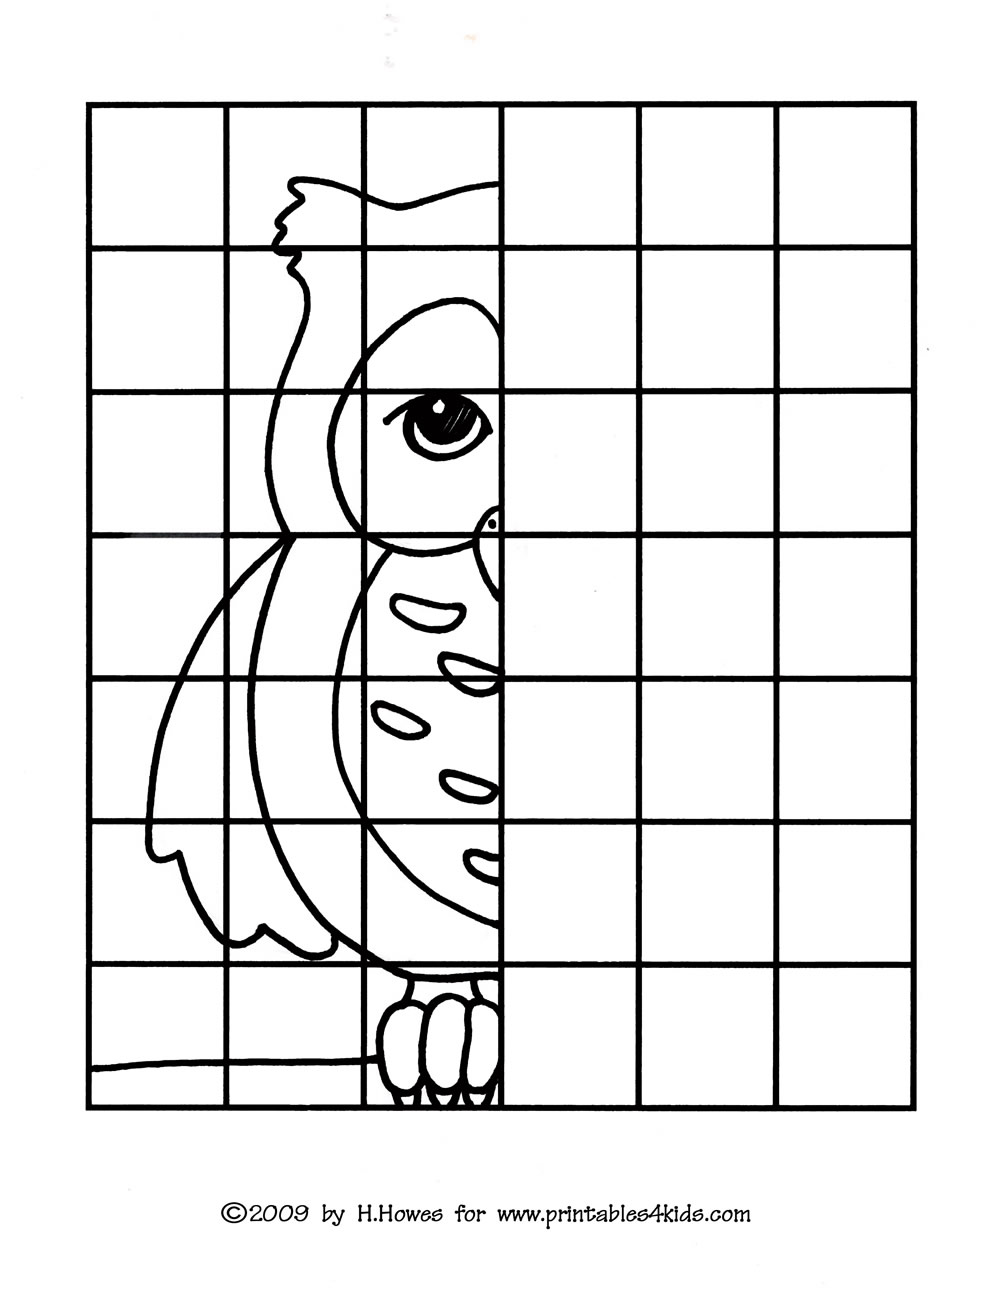 Owl Complete The Picture Drawing Printables For Kids Free Word